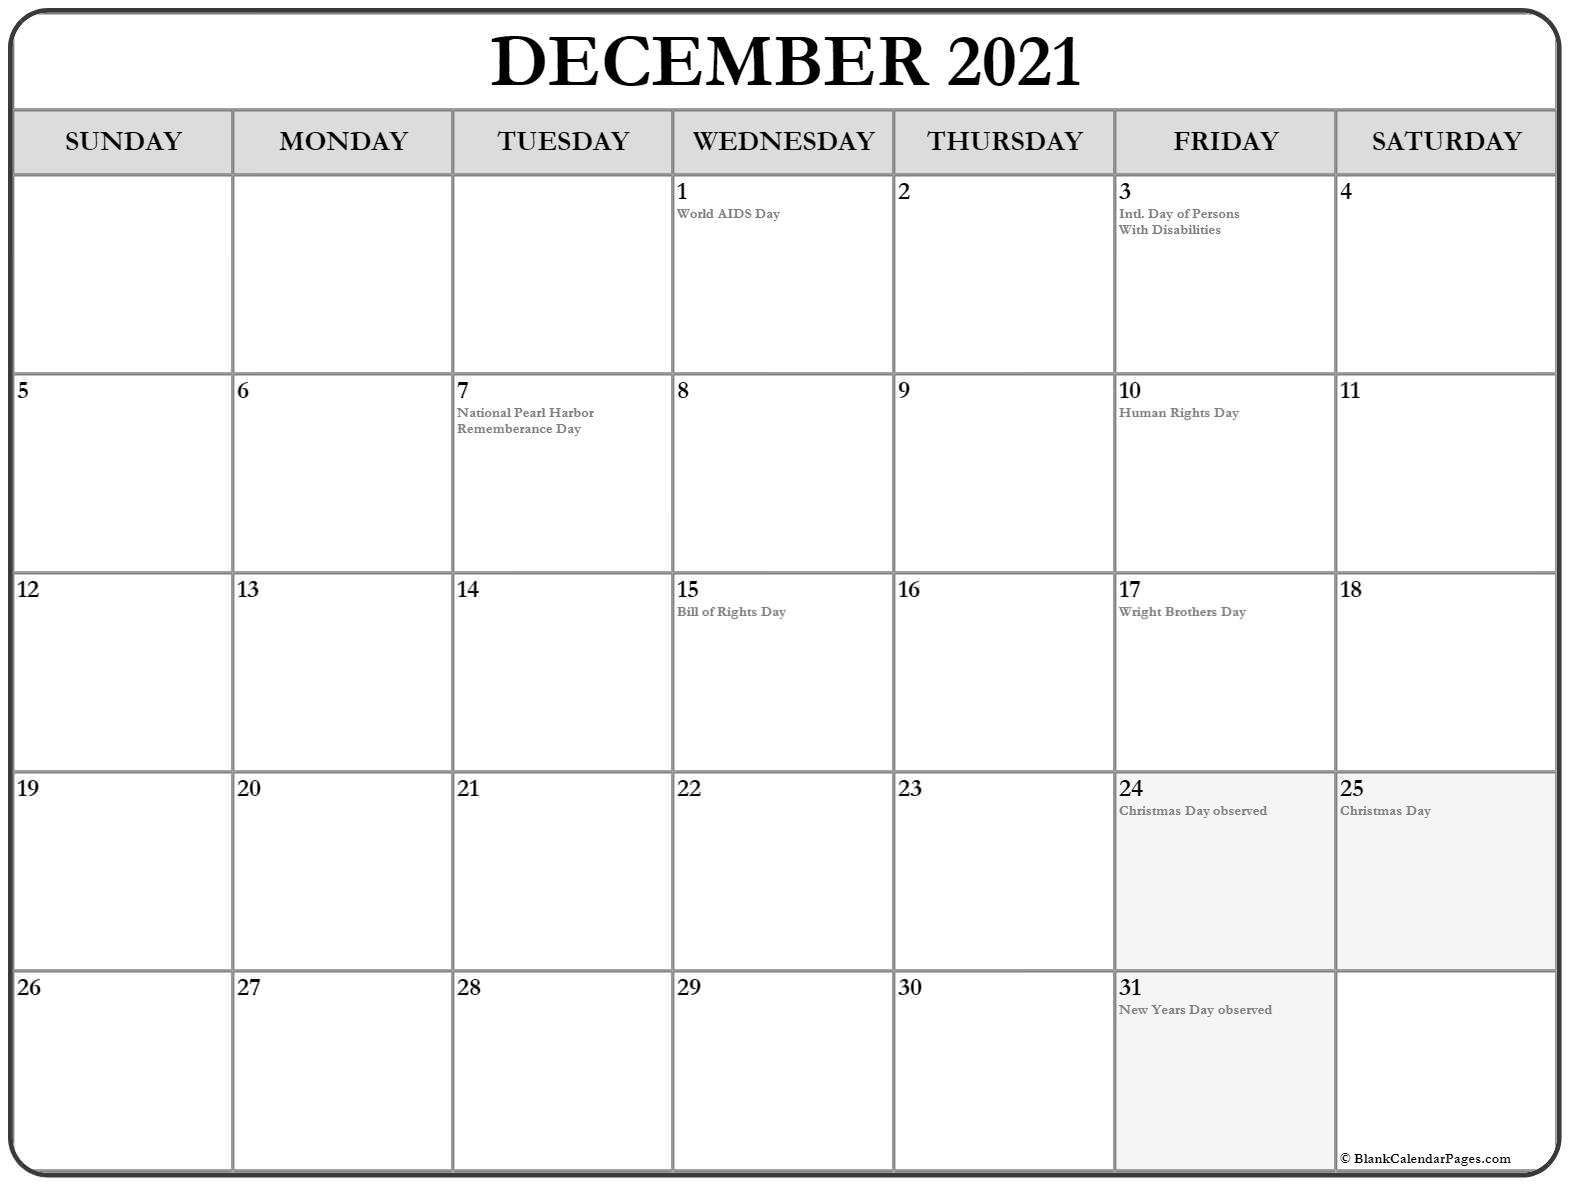 December 2019 USA holiday calendar. Incluides US federal holidays and observations